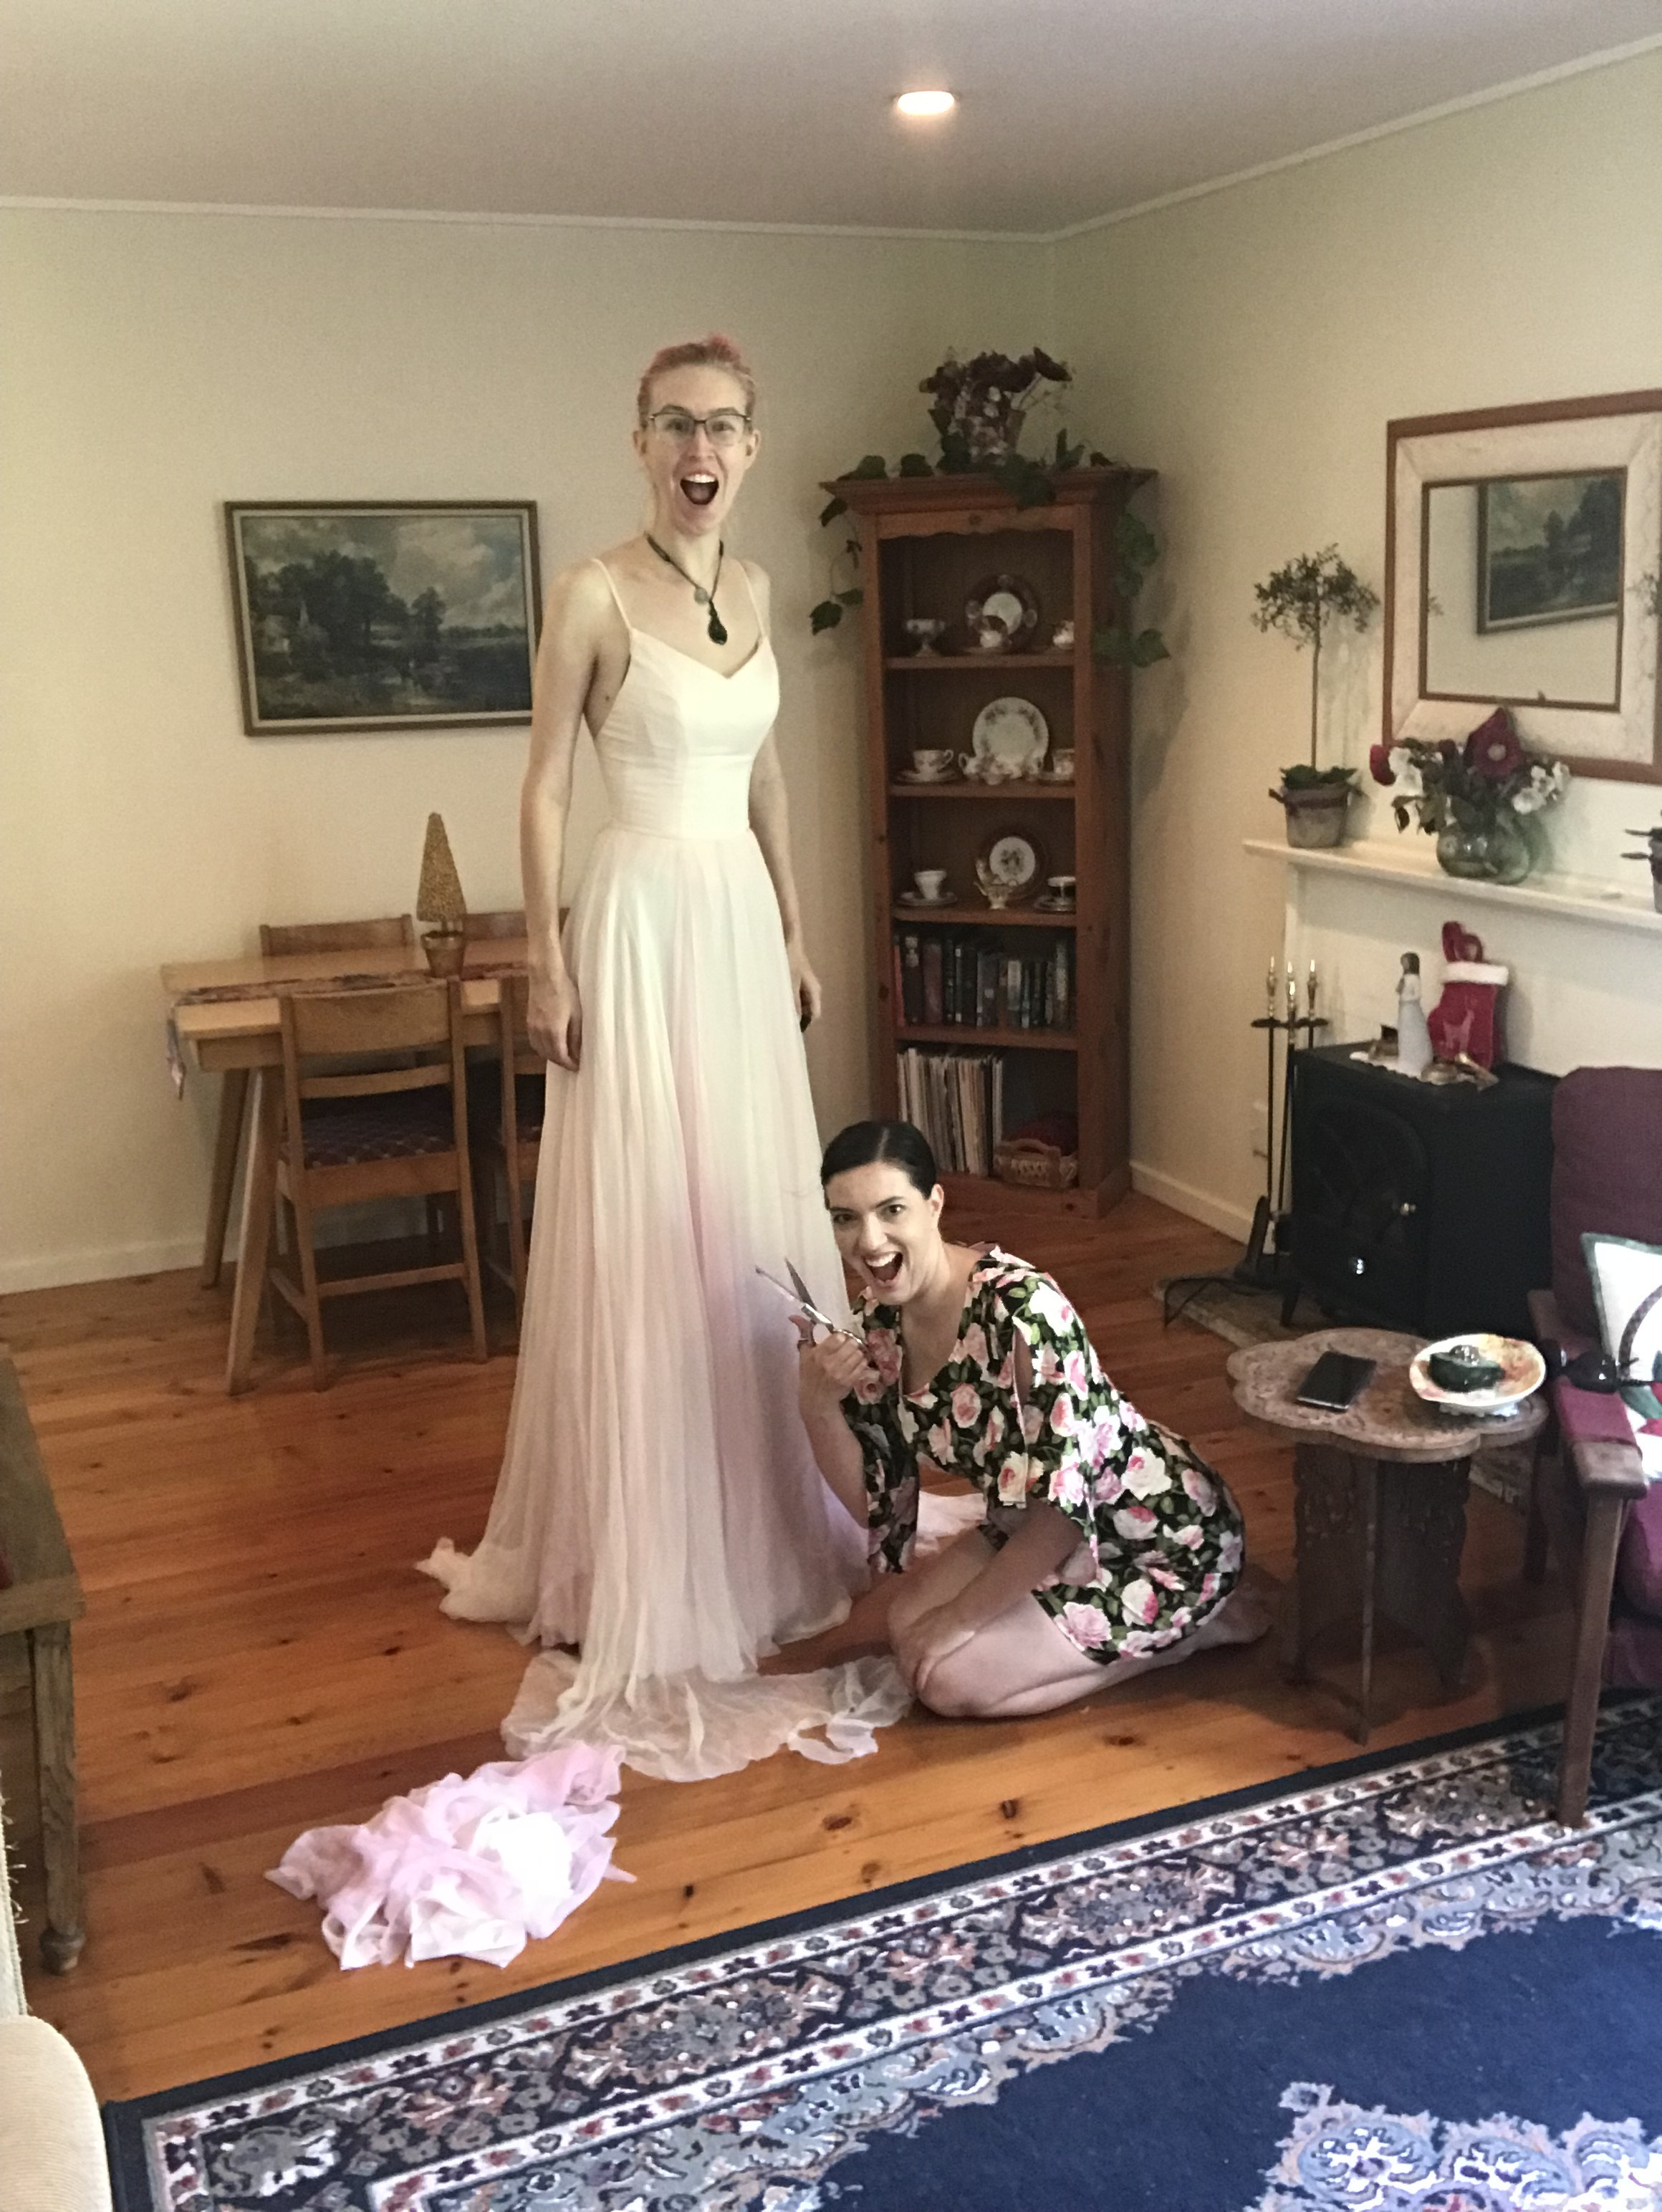 trimming wedding dress hem